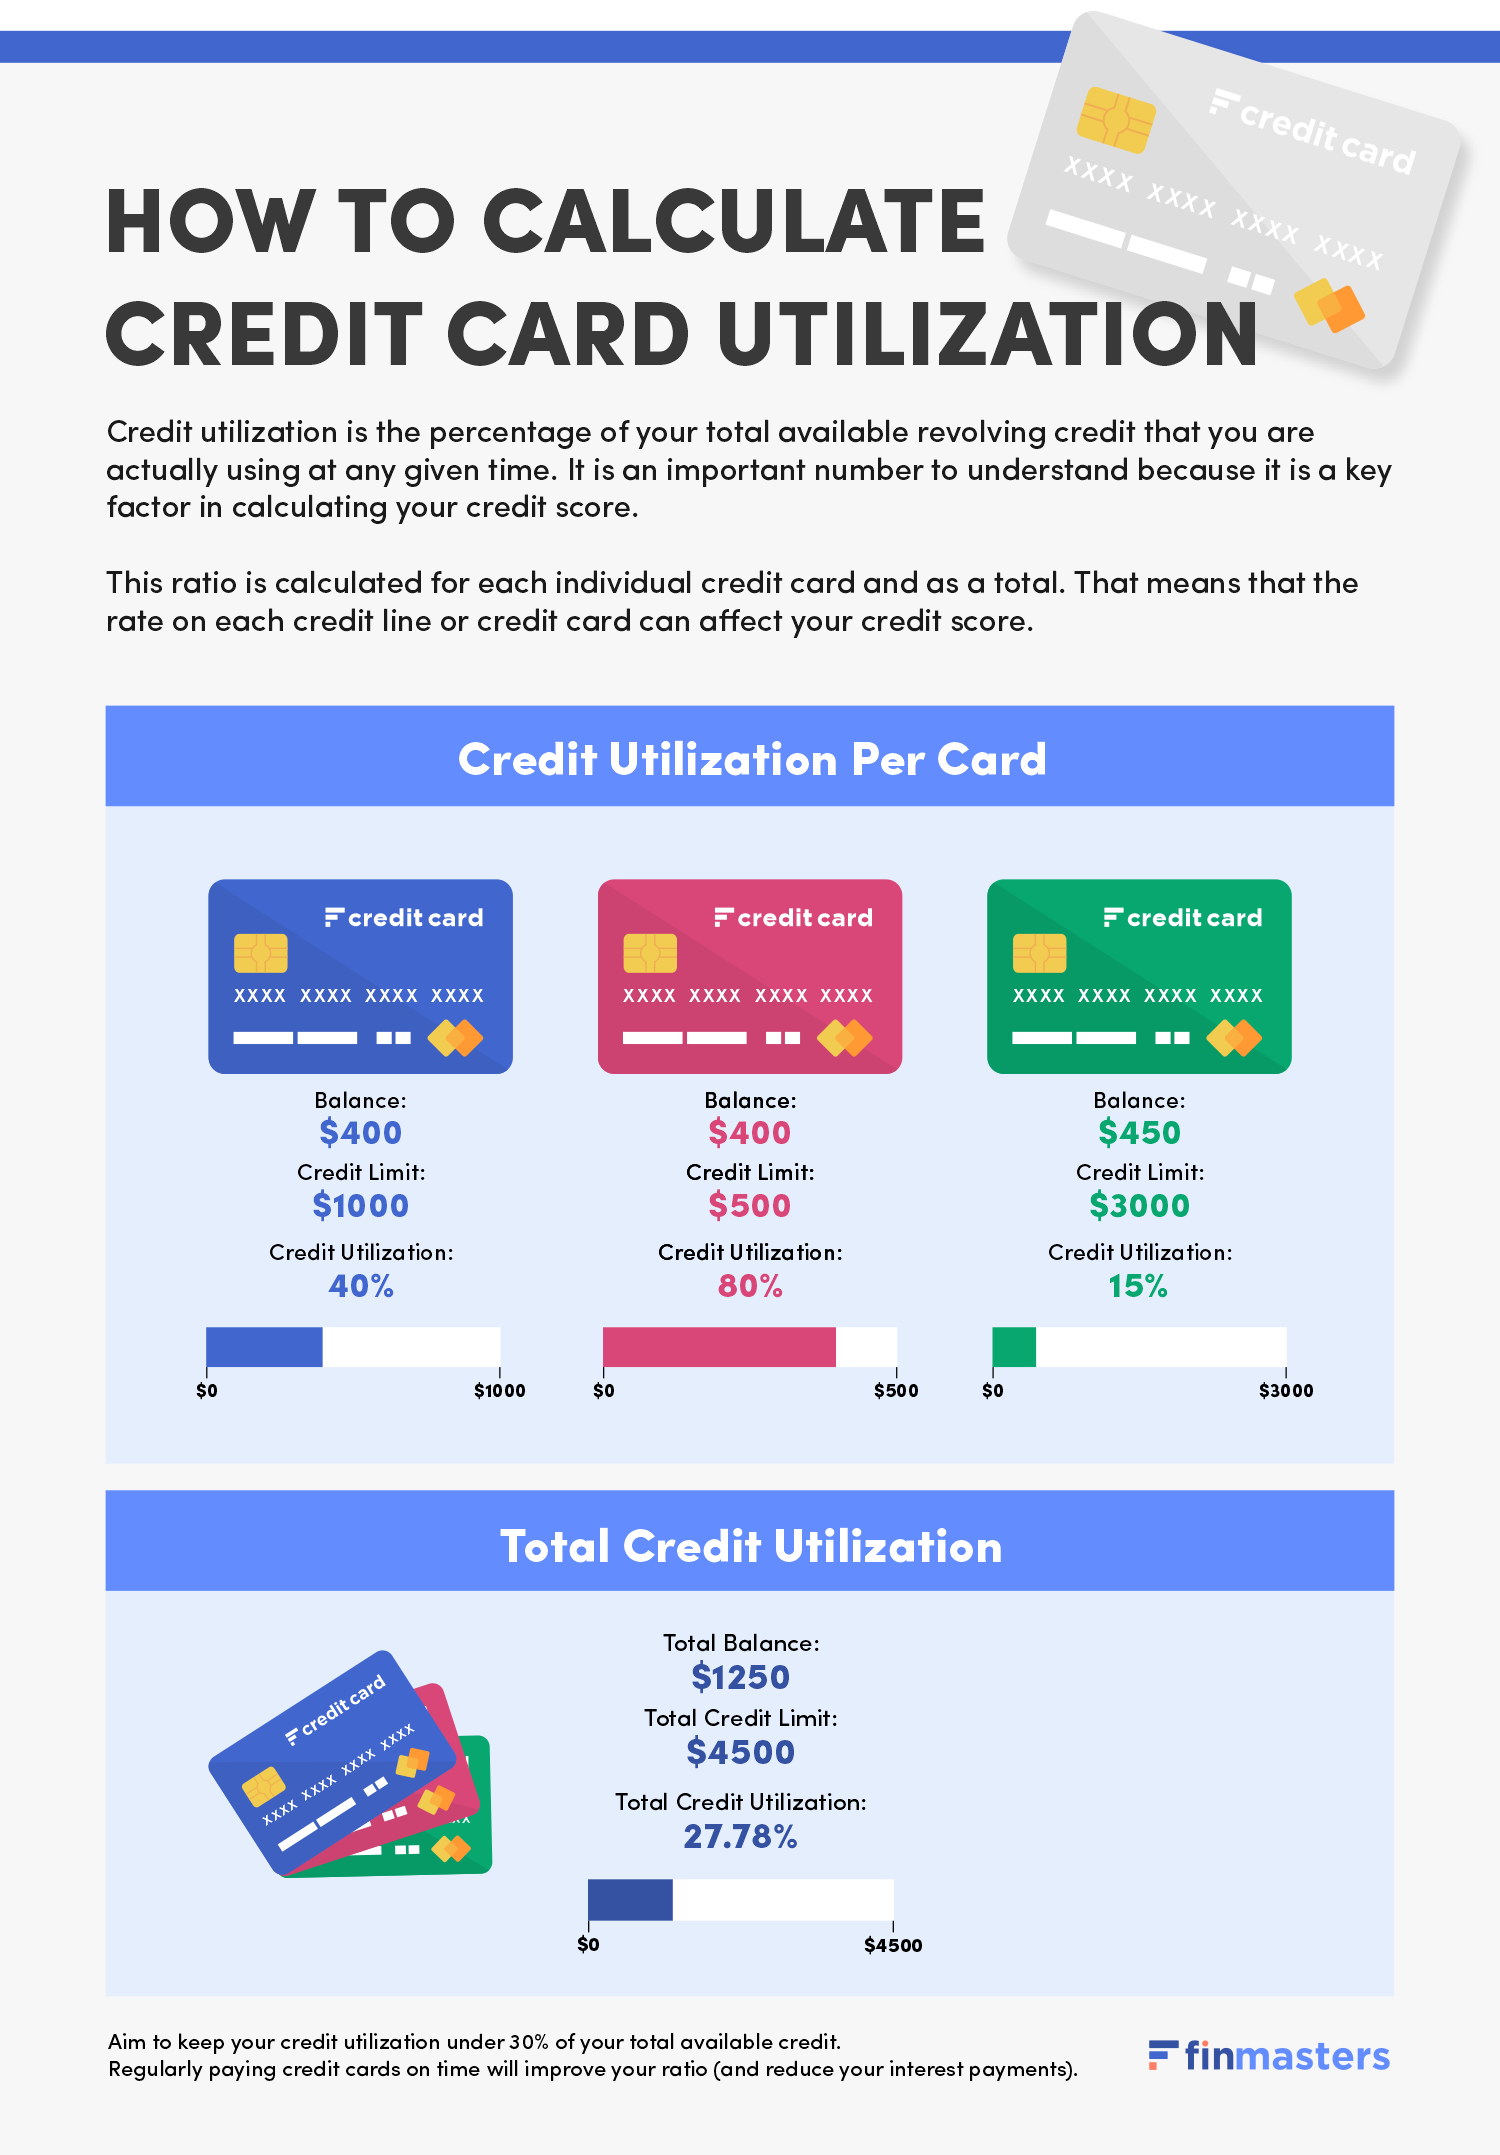 How to calculate credit card utilization